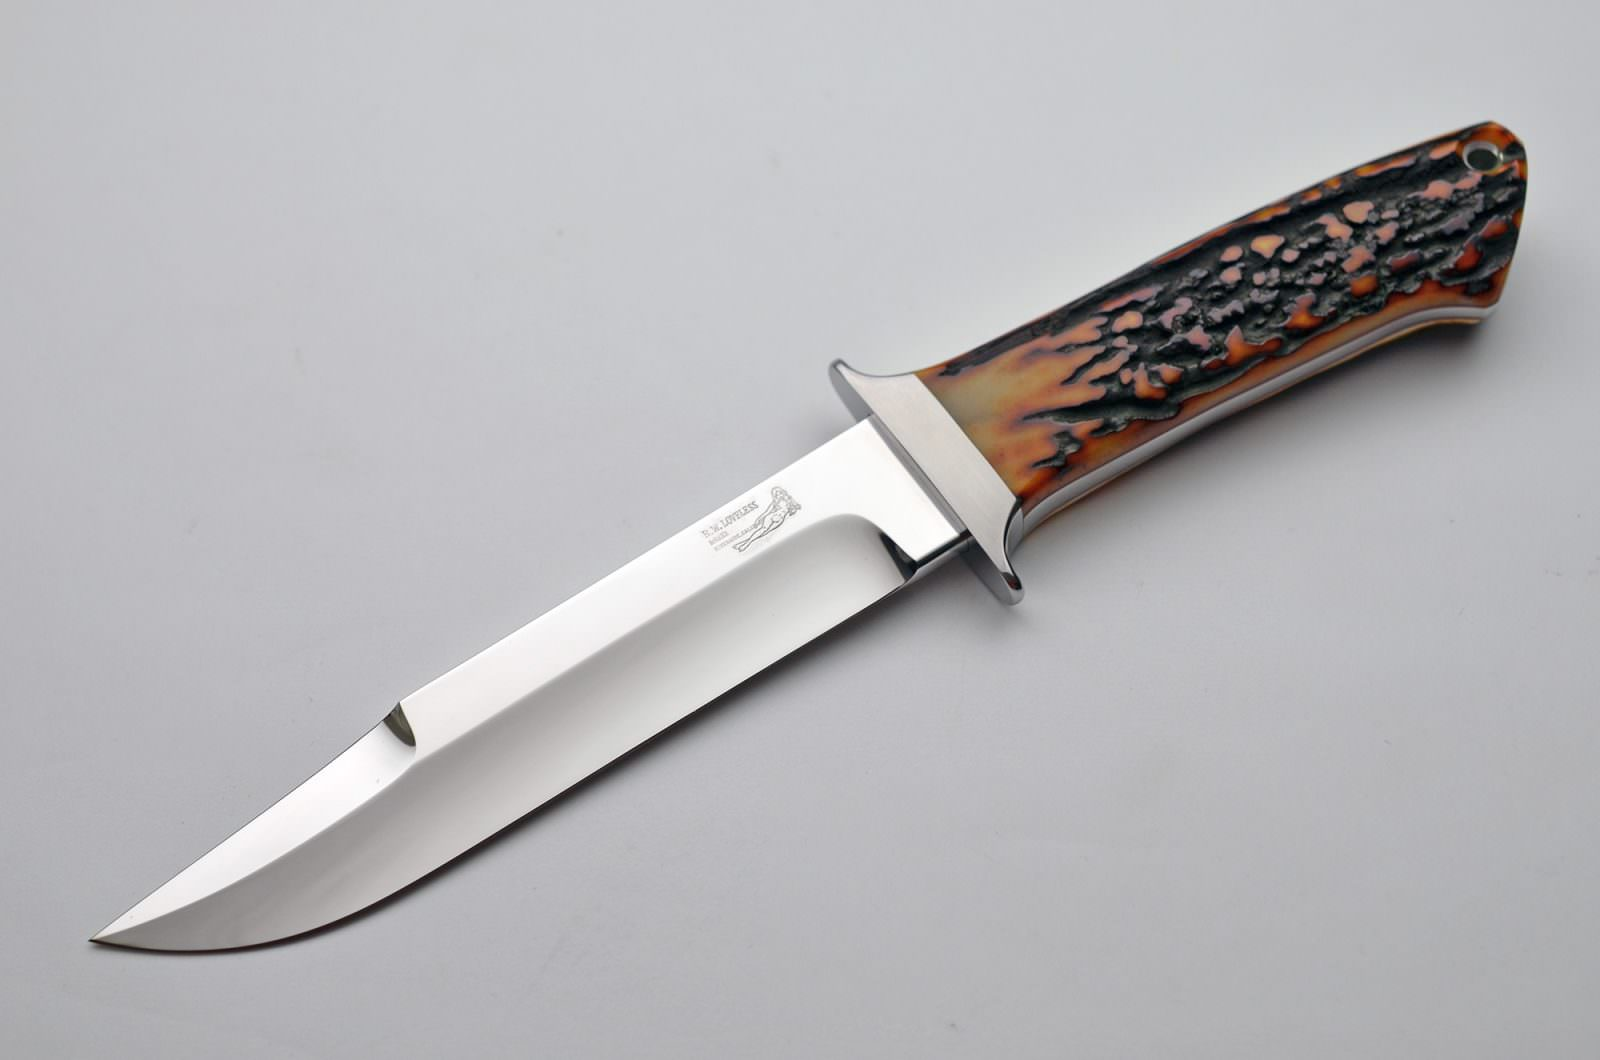 bowie knives